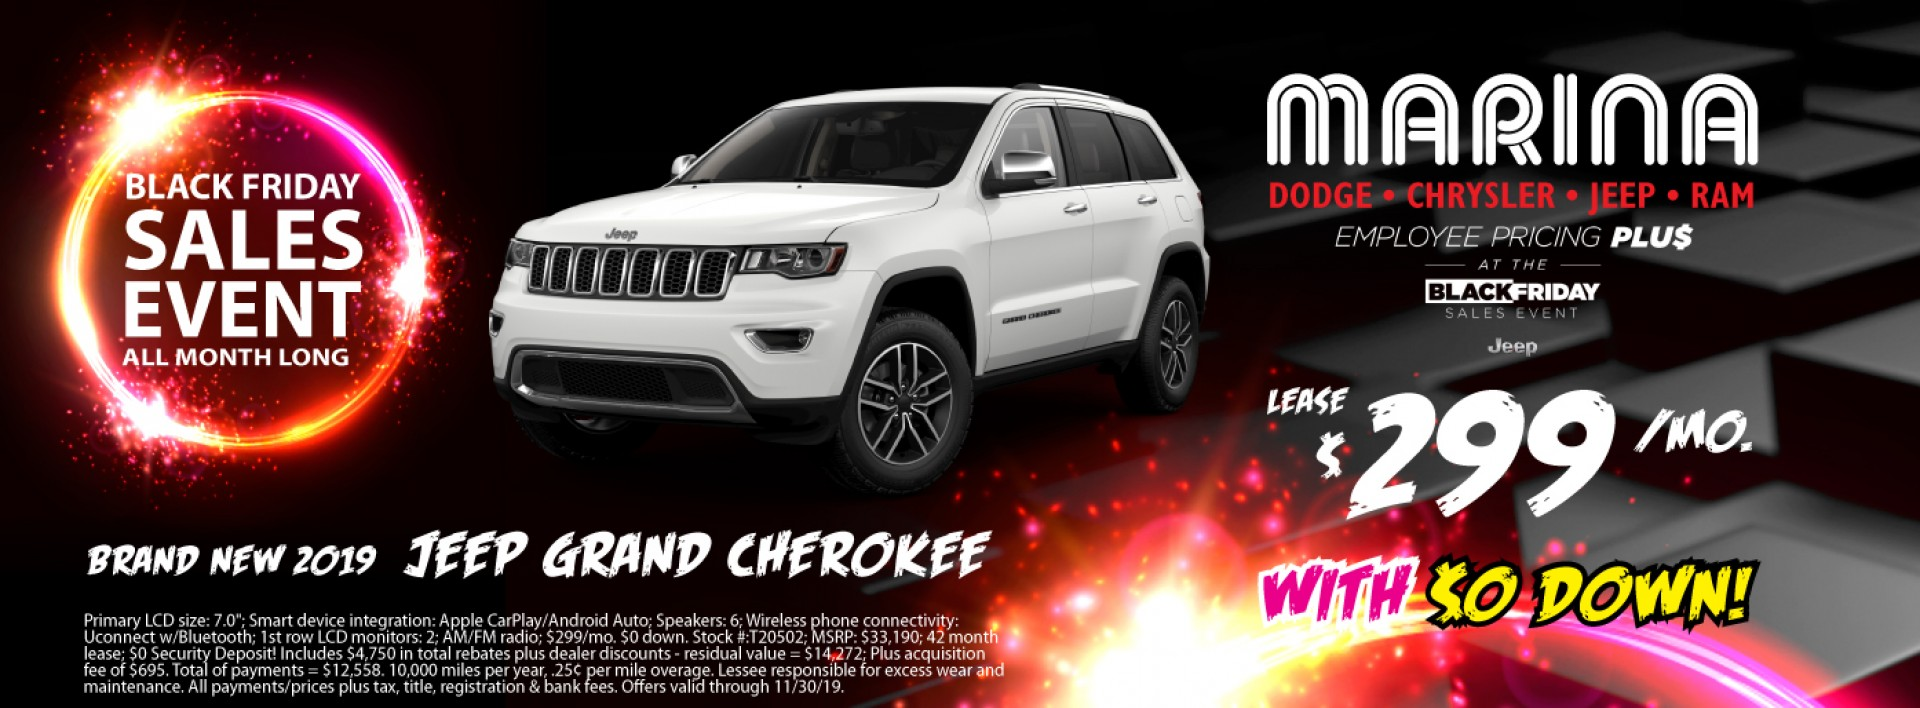 Brand new 2019 Jeep Grand Cherokee lease $299/mo with $0 down!